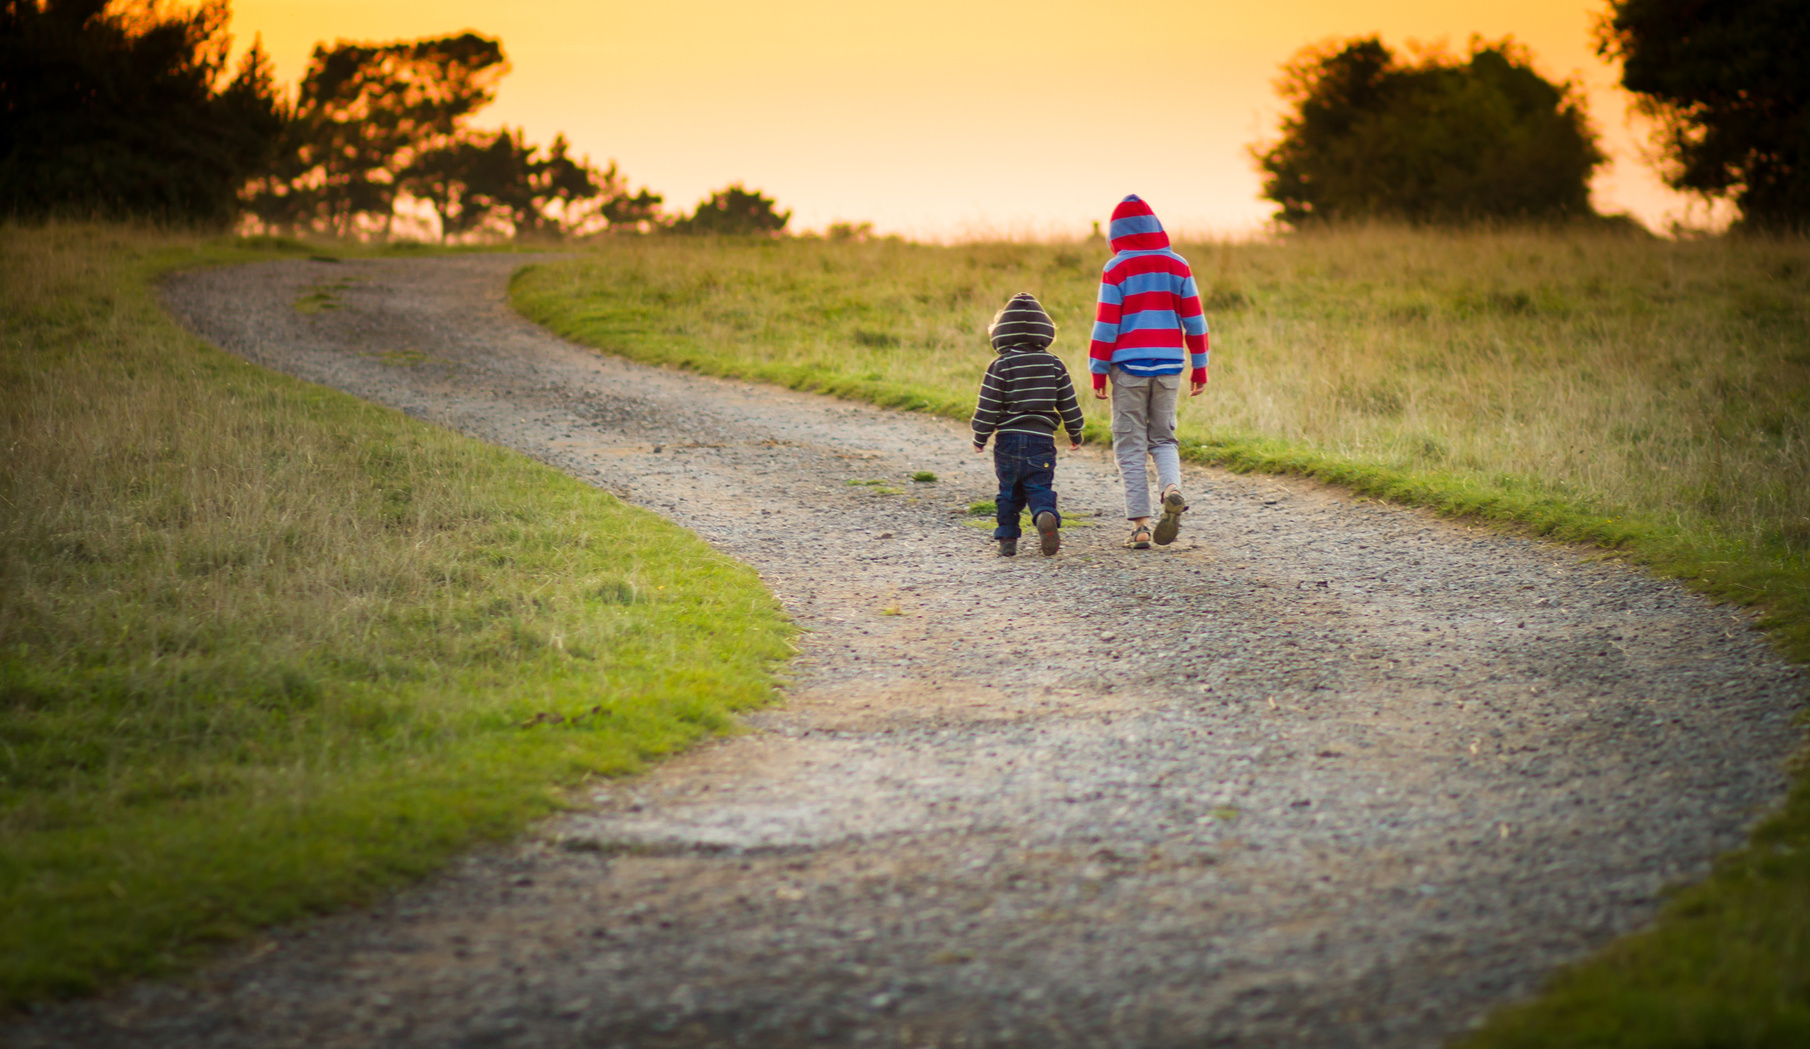 two young boys walking together down a path towards the setting sun